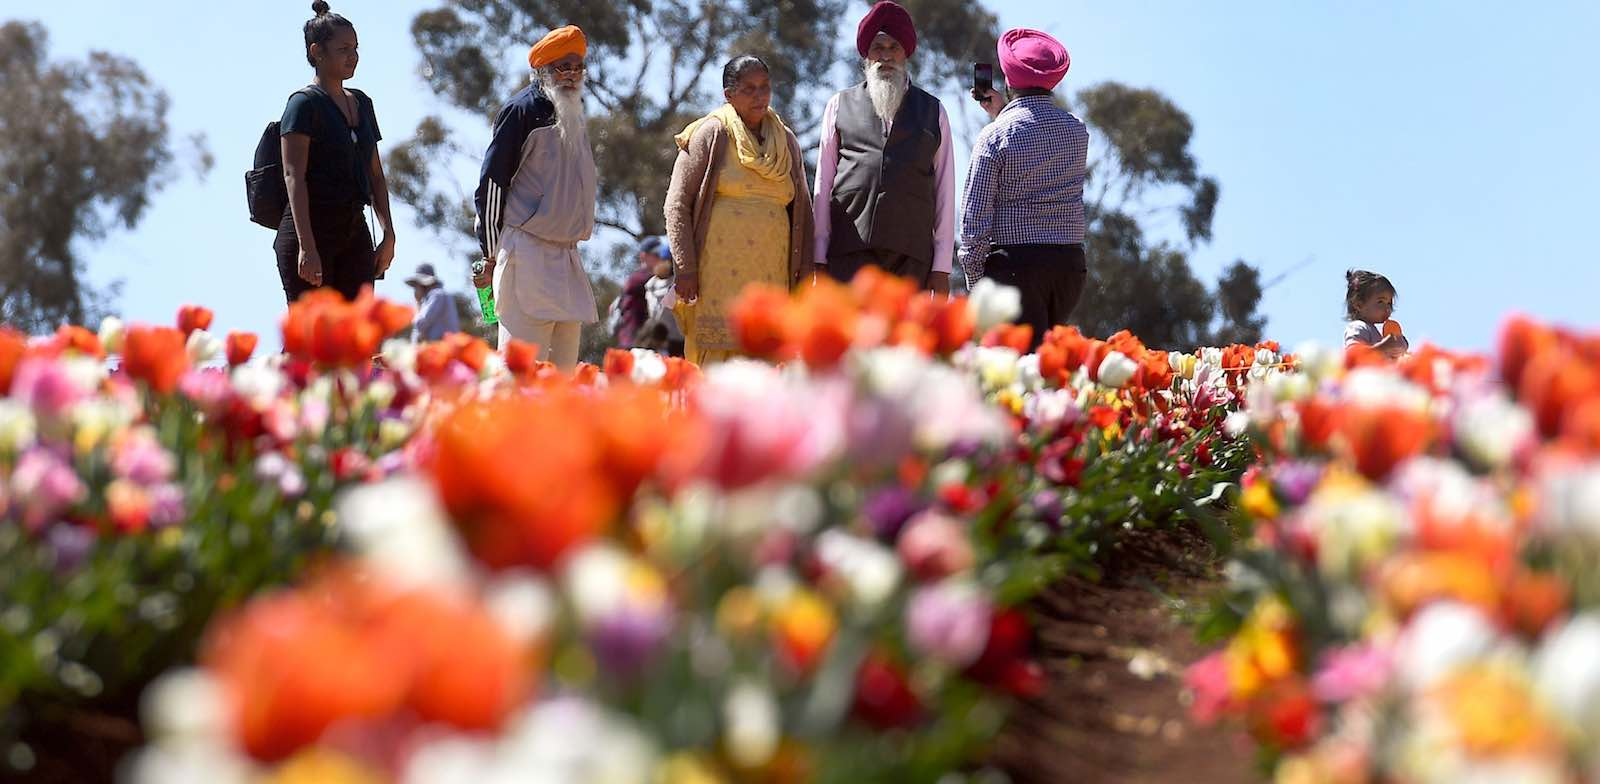 Visitors to the Tesselaar Tulip Festival at Silvan in the Dandenong Ranges on the outskirts of Melbourne, 27 September 2018 (Photo: William West via Getty)